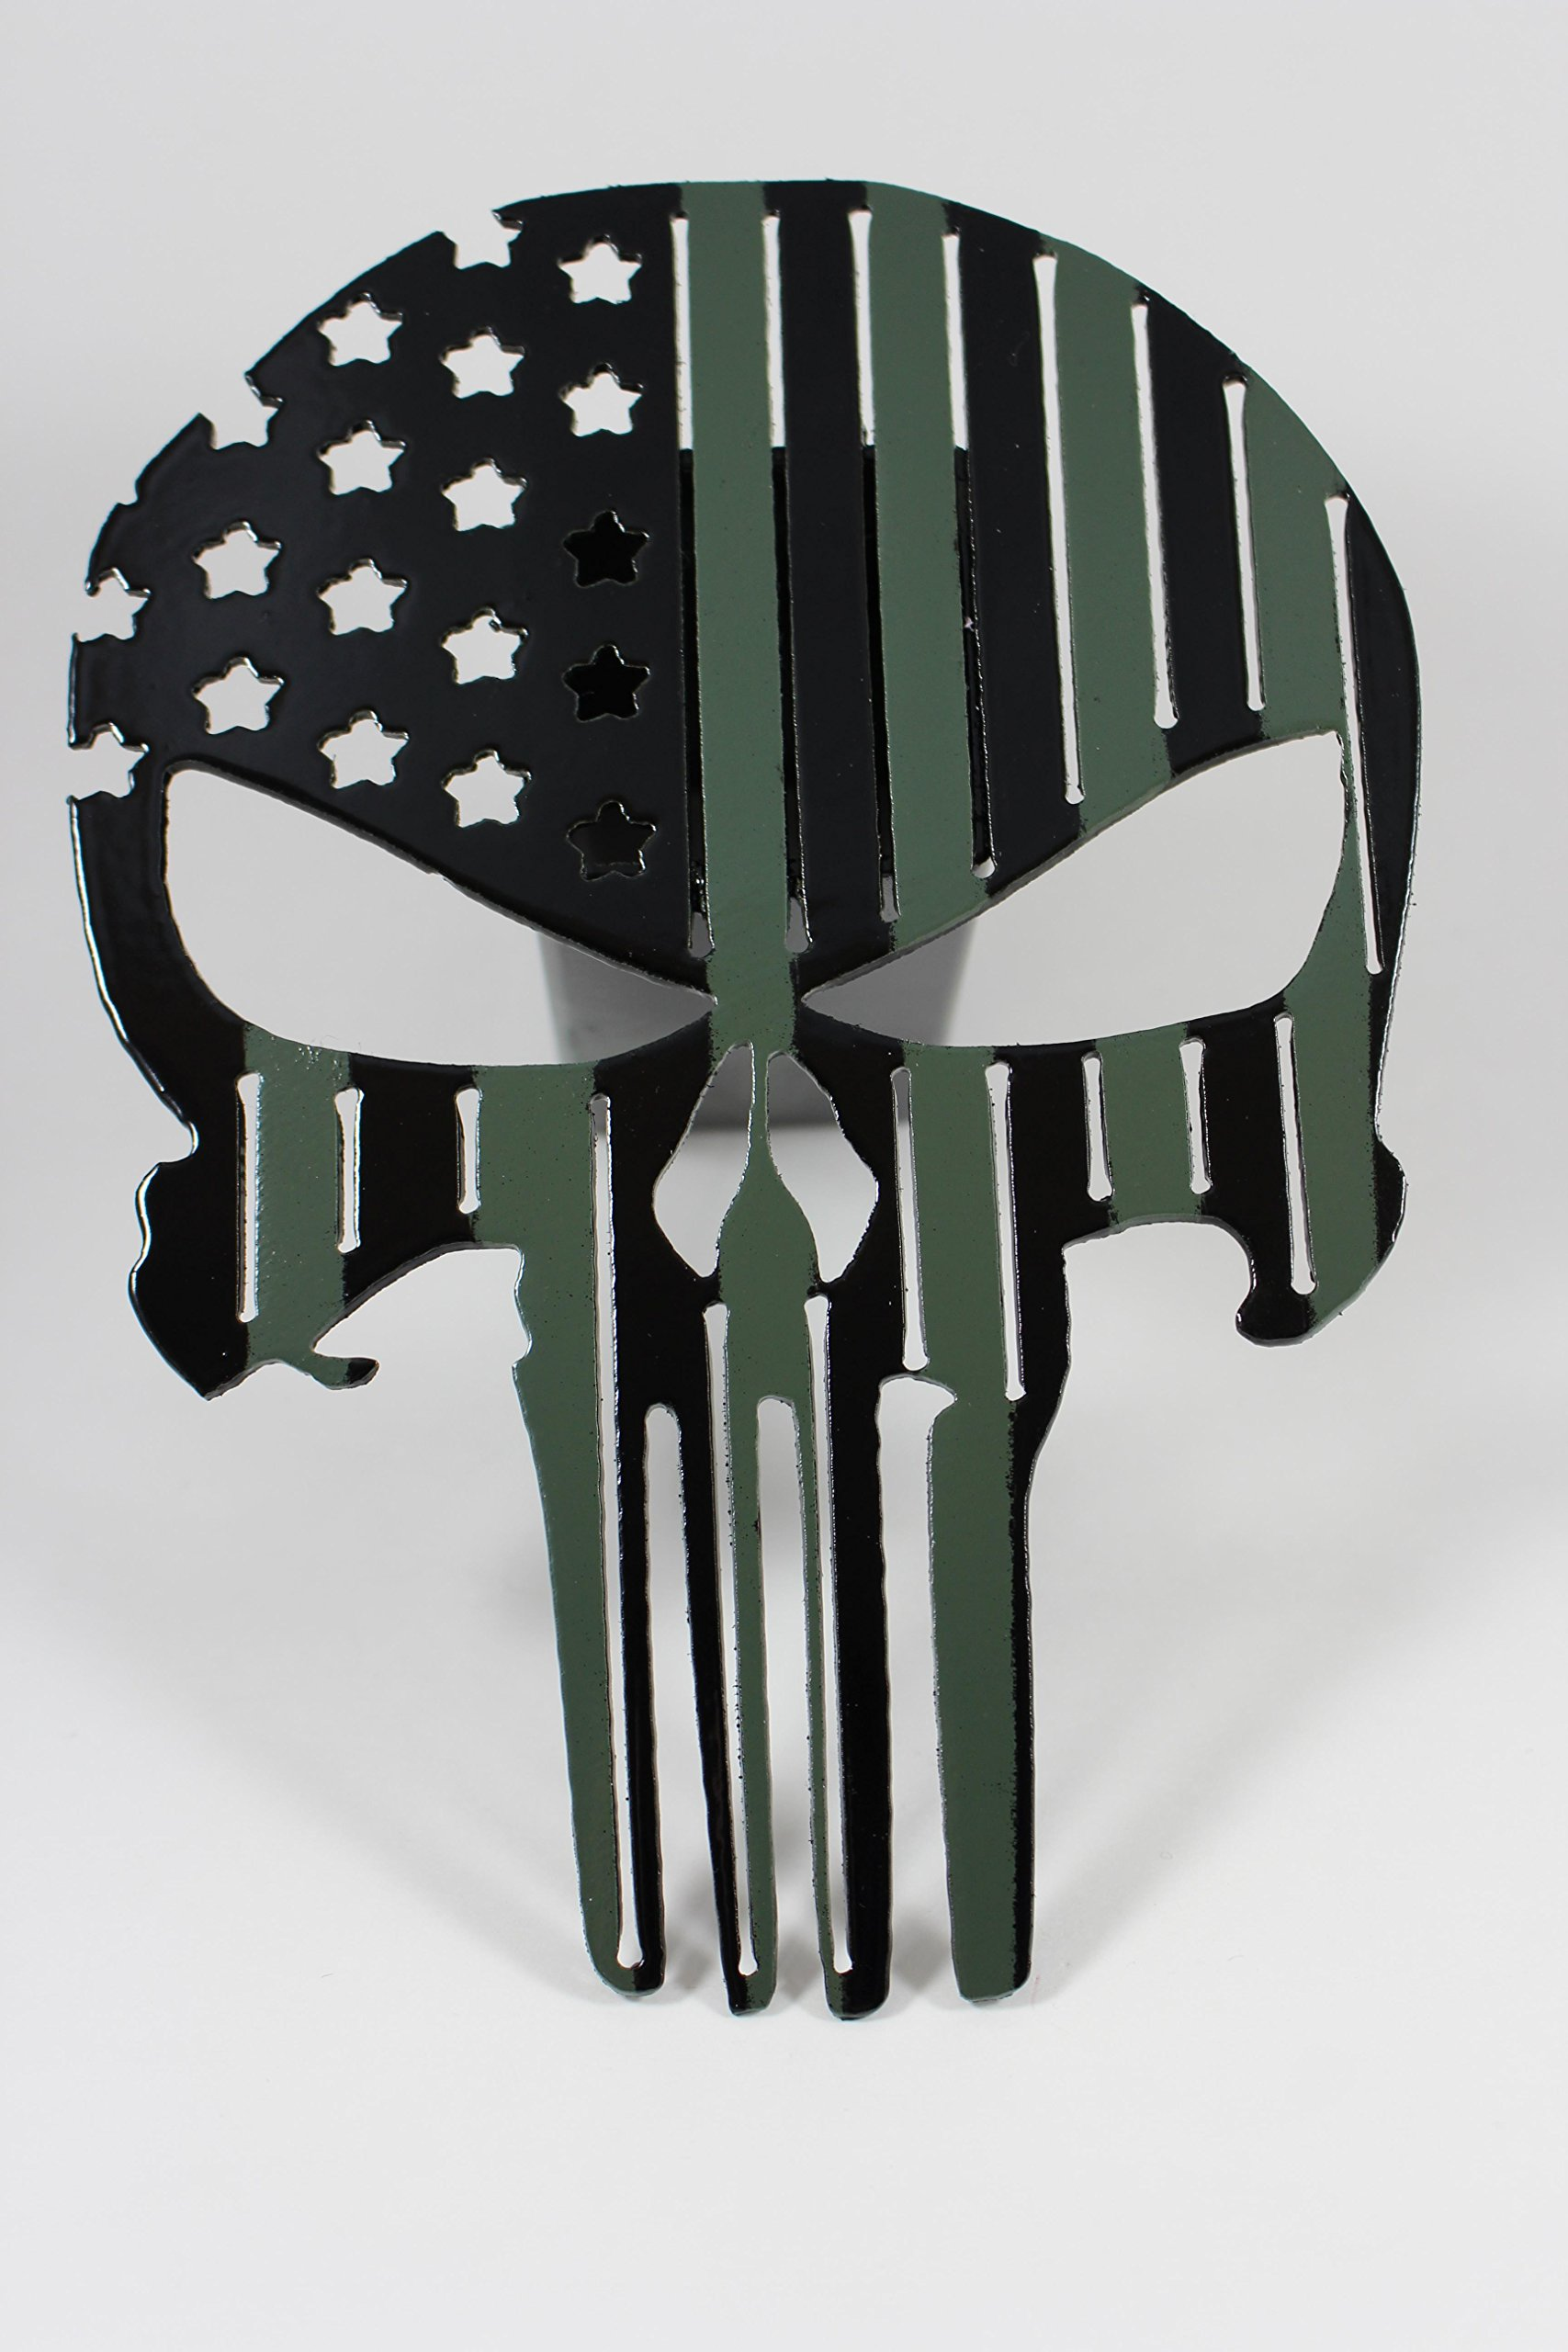 Punisher Flag Trailer Hitch Cover Black and Army Green